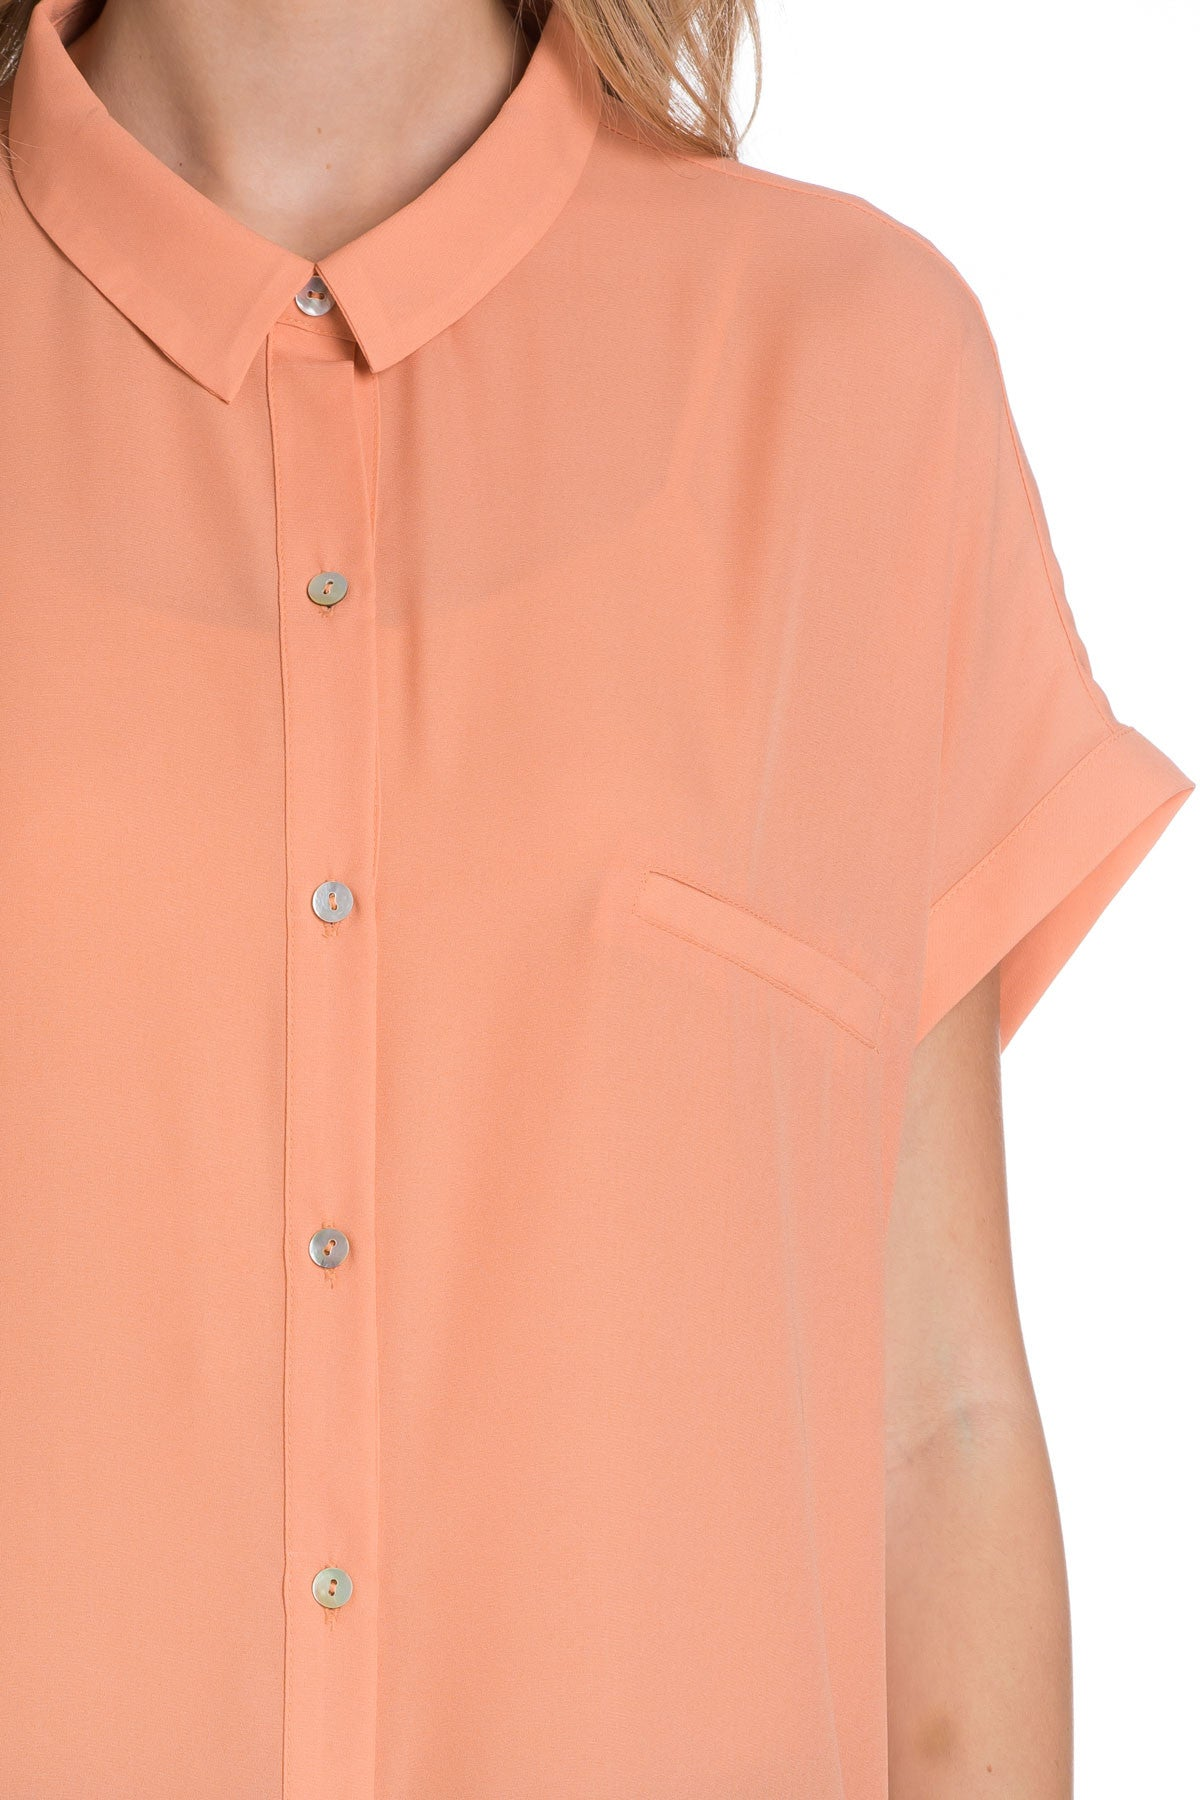 Short Sleeve Longline Button Down Chiffon Top in Peachy - Tops - My Yuccie - 4